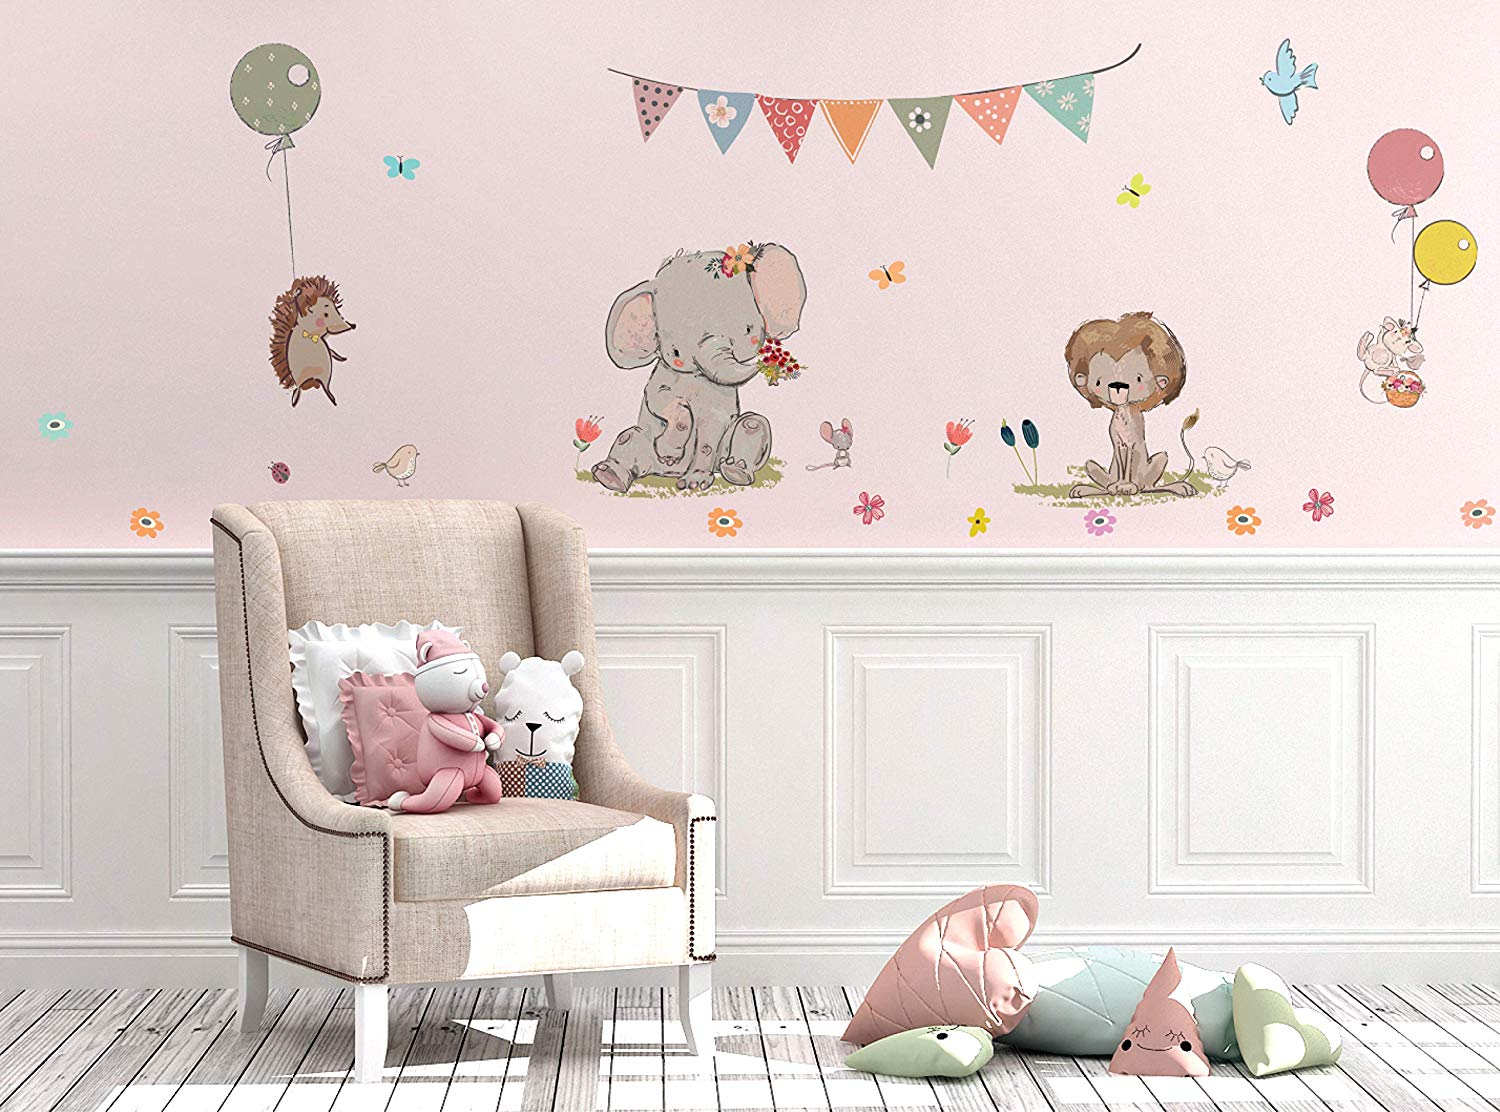 Traveller Location: Kids Wall Decals Stickers Nursery Decor Baby Room Decor Nursery  Wall Stickers Safari Woodland Scene for Baby Toddler Boys & Girls Rooms  Peel and